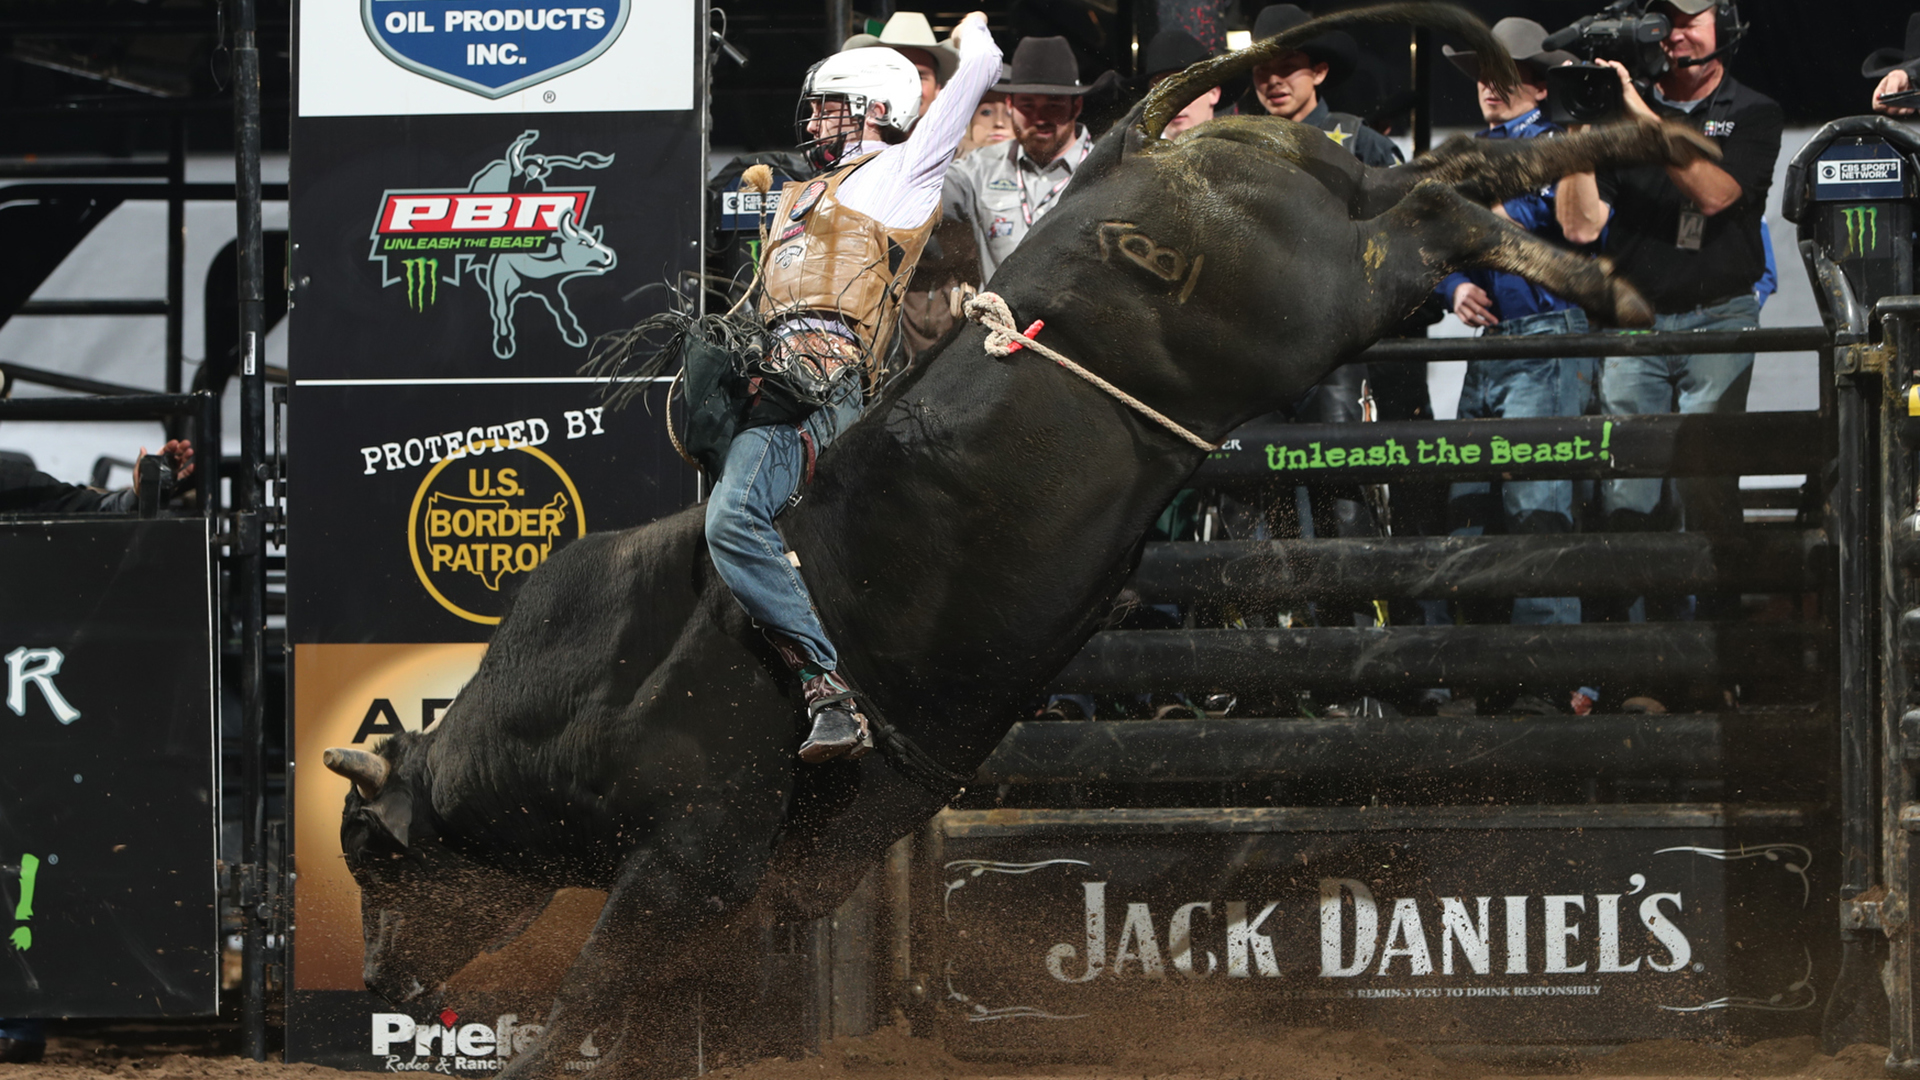 History in L.A.: Will a rookie win Iron Cowboy for the first time?